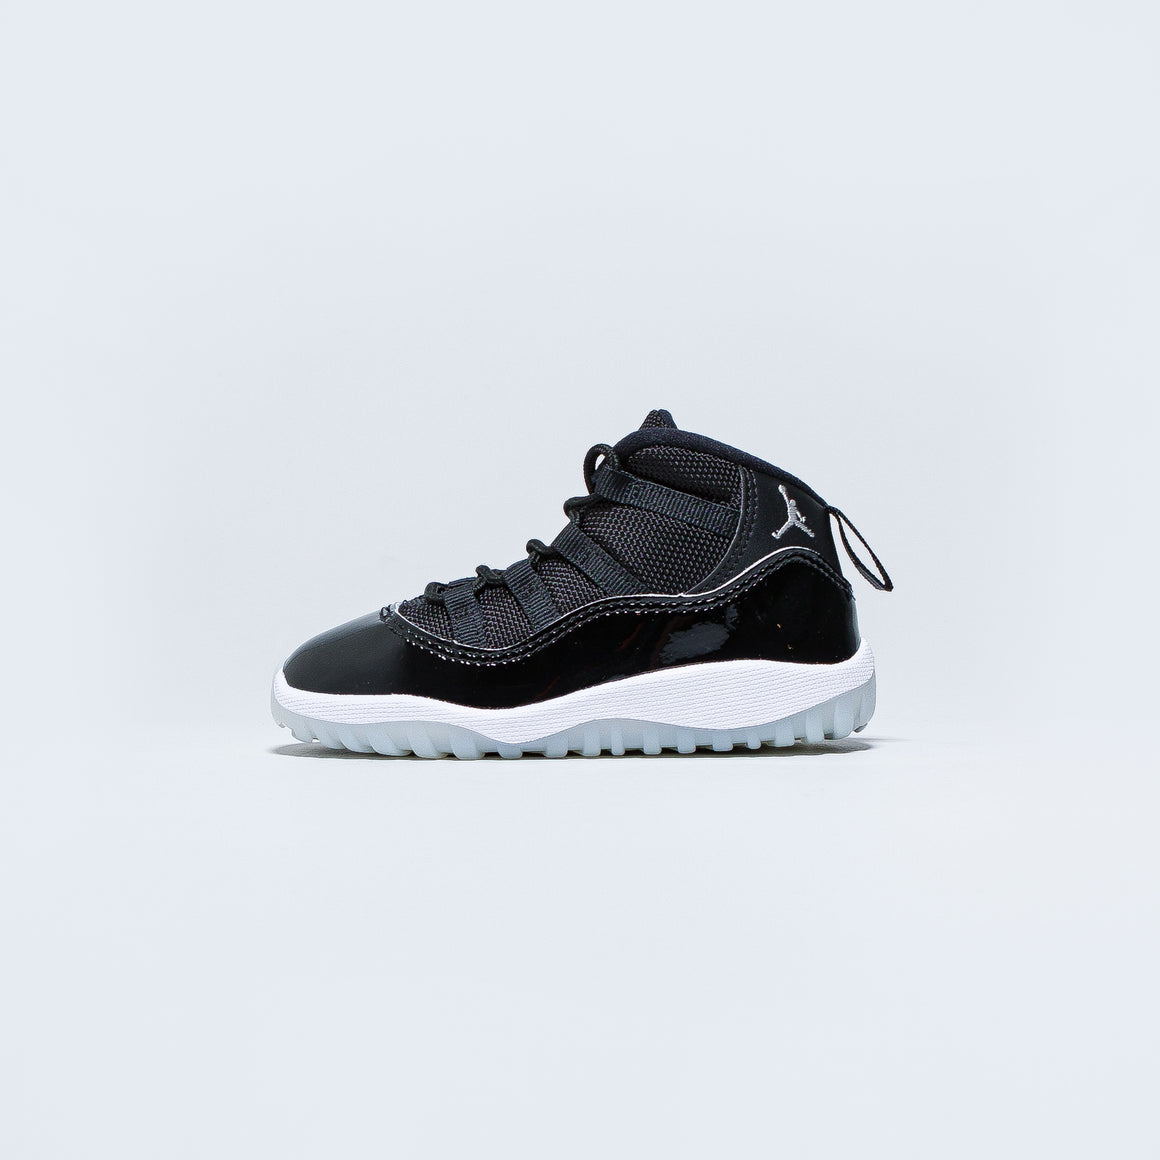 Jordan - Air Jordan 11 Retro TD - Black/Multi-Colour-Multi-Colour - Up There